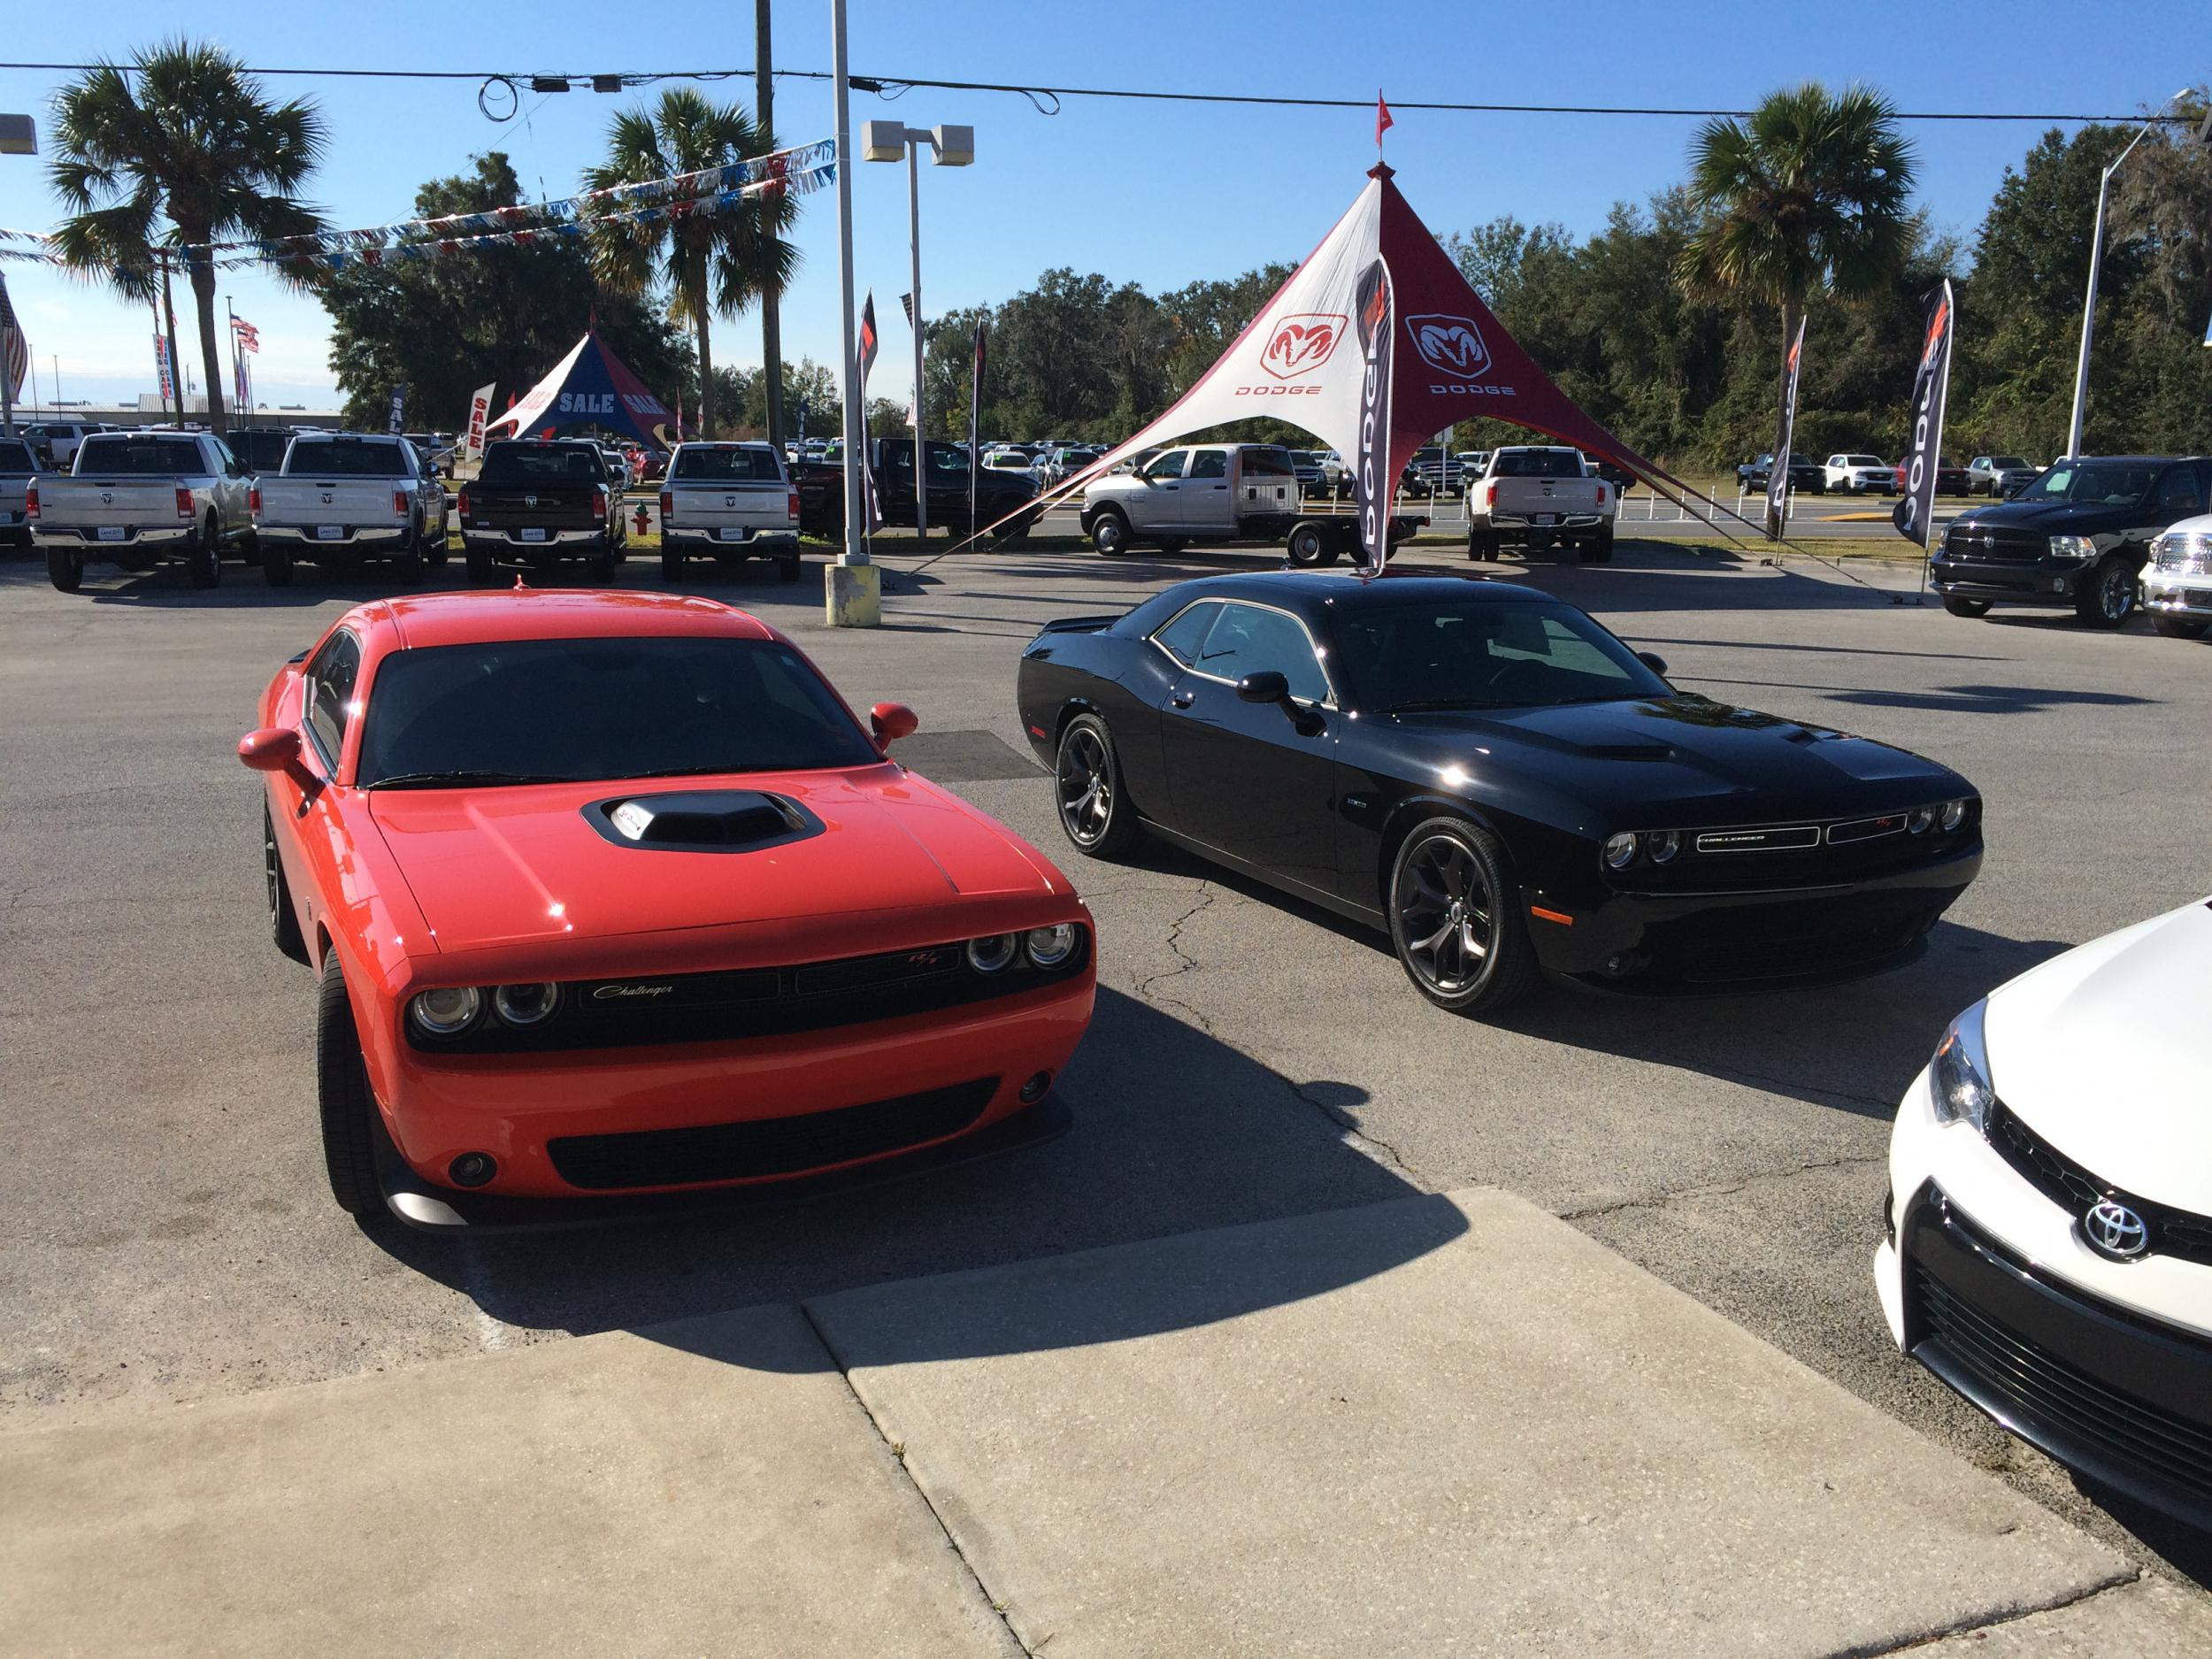 own this pay money on i rt someday will with dream inside sale blue car yellow for the and all accents dodge outside baby pin challenger my but